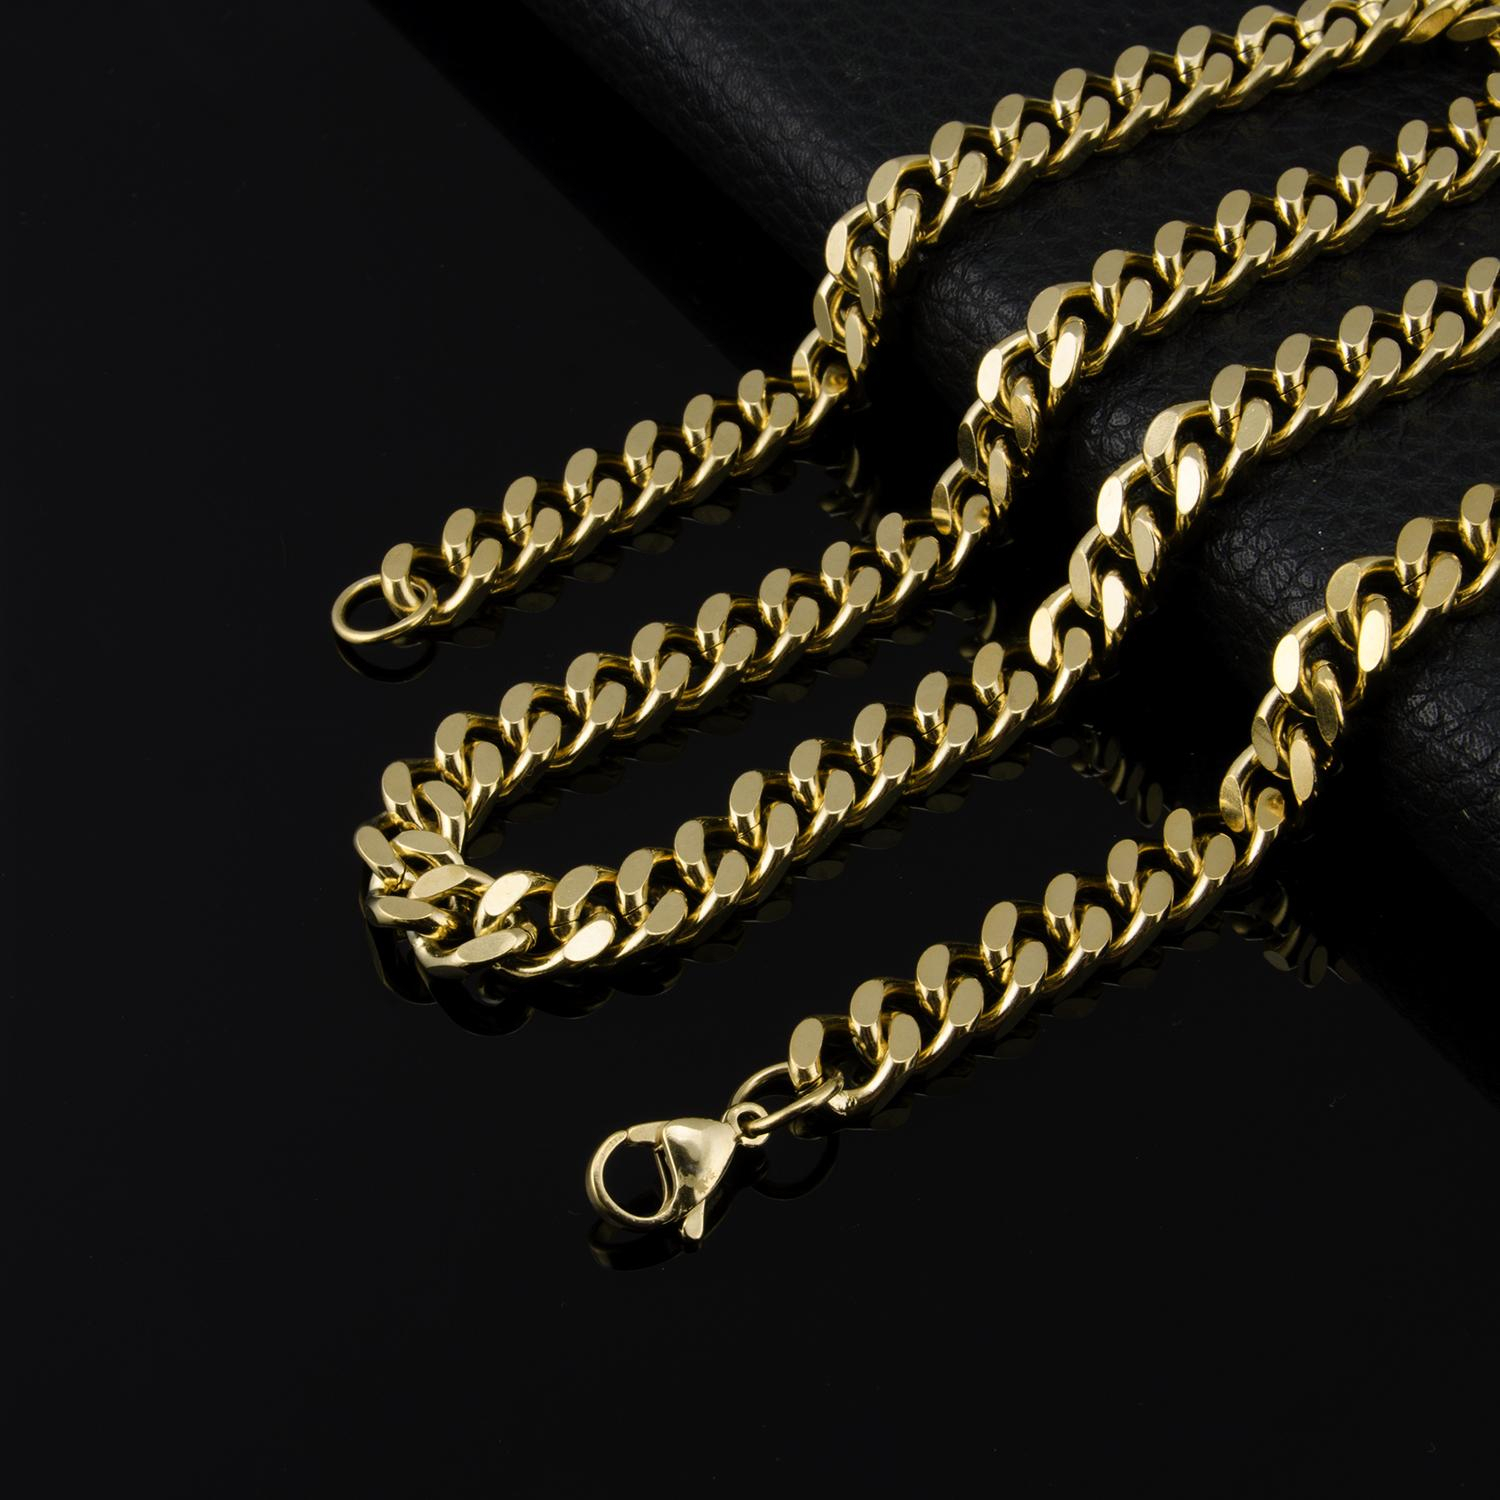 Usenset 10Mm/24Inch Mens Chain Womens Round Cut Curb Chain Necklace Gold  Filled Gf Jewelry Party Daily Wear Silver Necklace Pertaining To Most Up To Date Curb Chain Necklaces (Gallery 24 of 25)